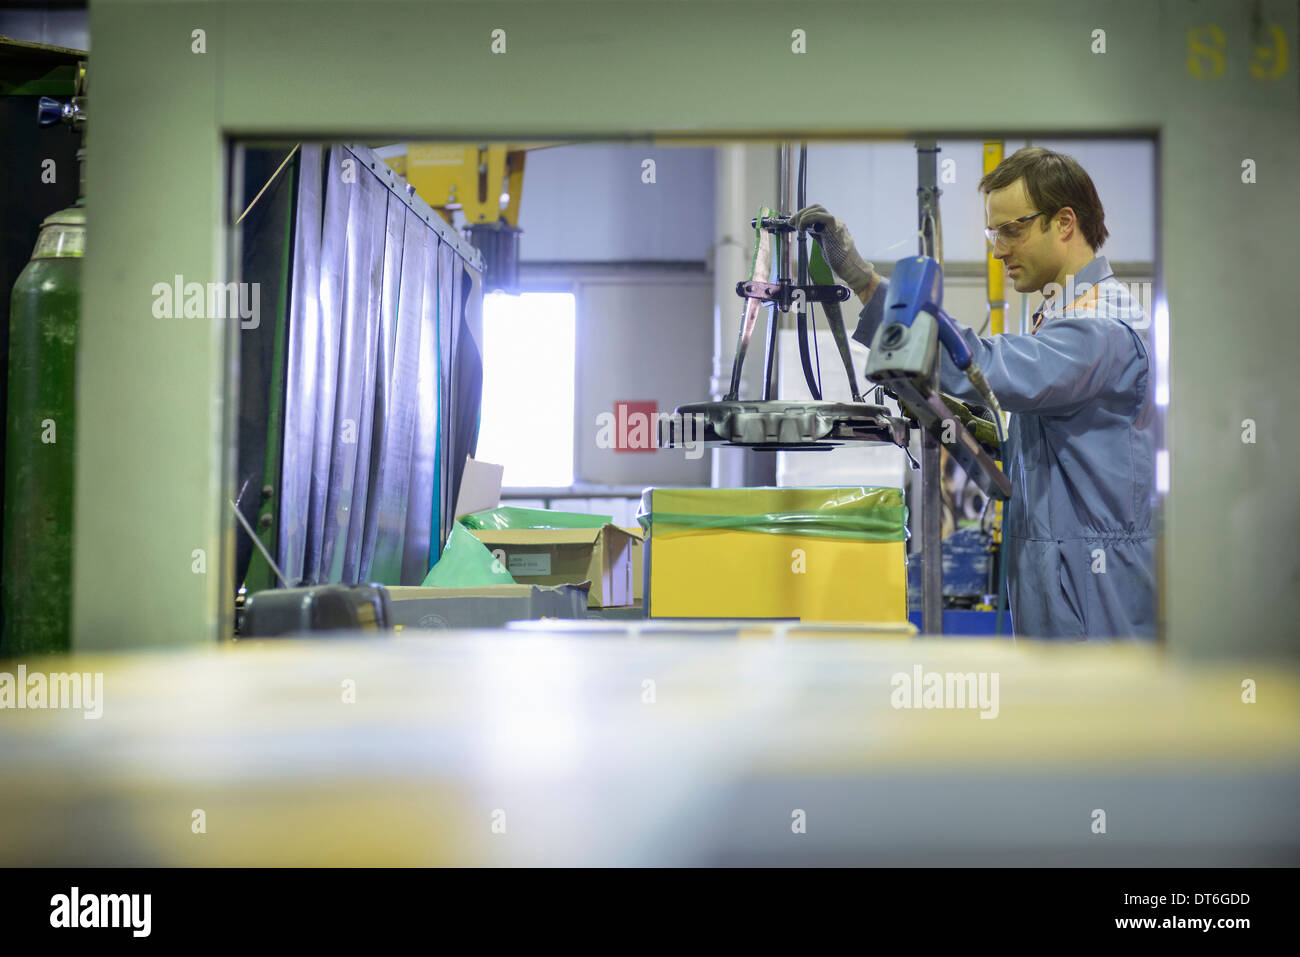 Worker on packing line in factory - Stock Image